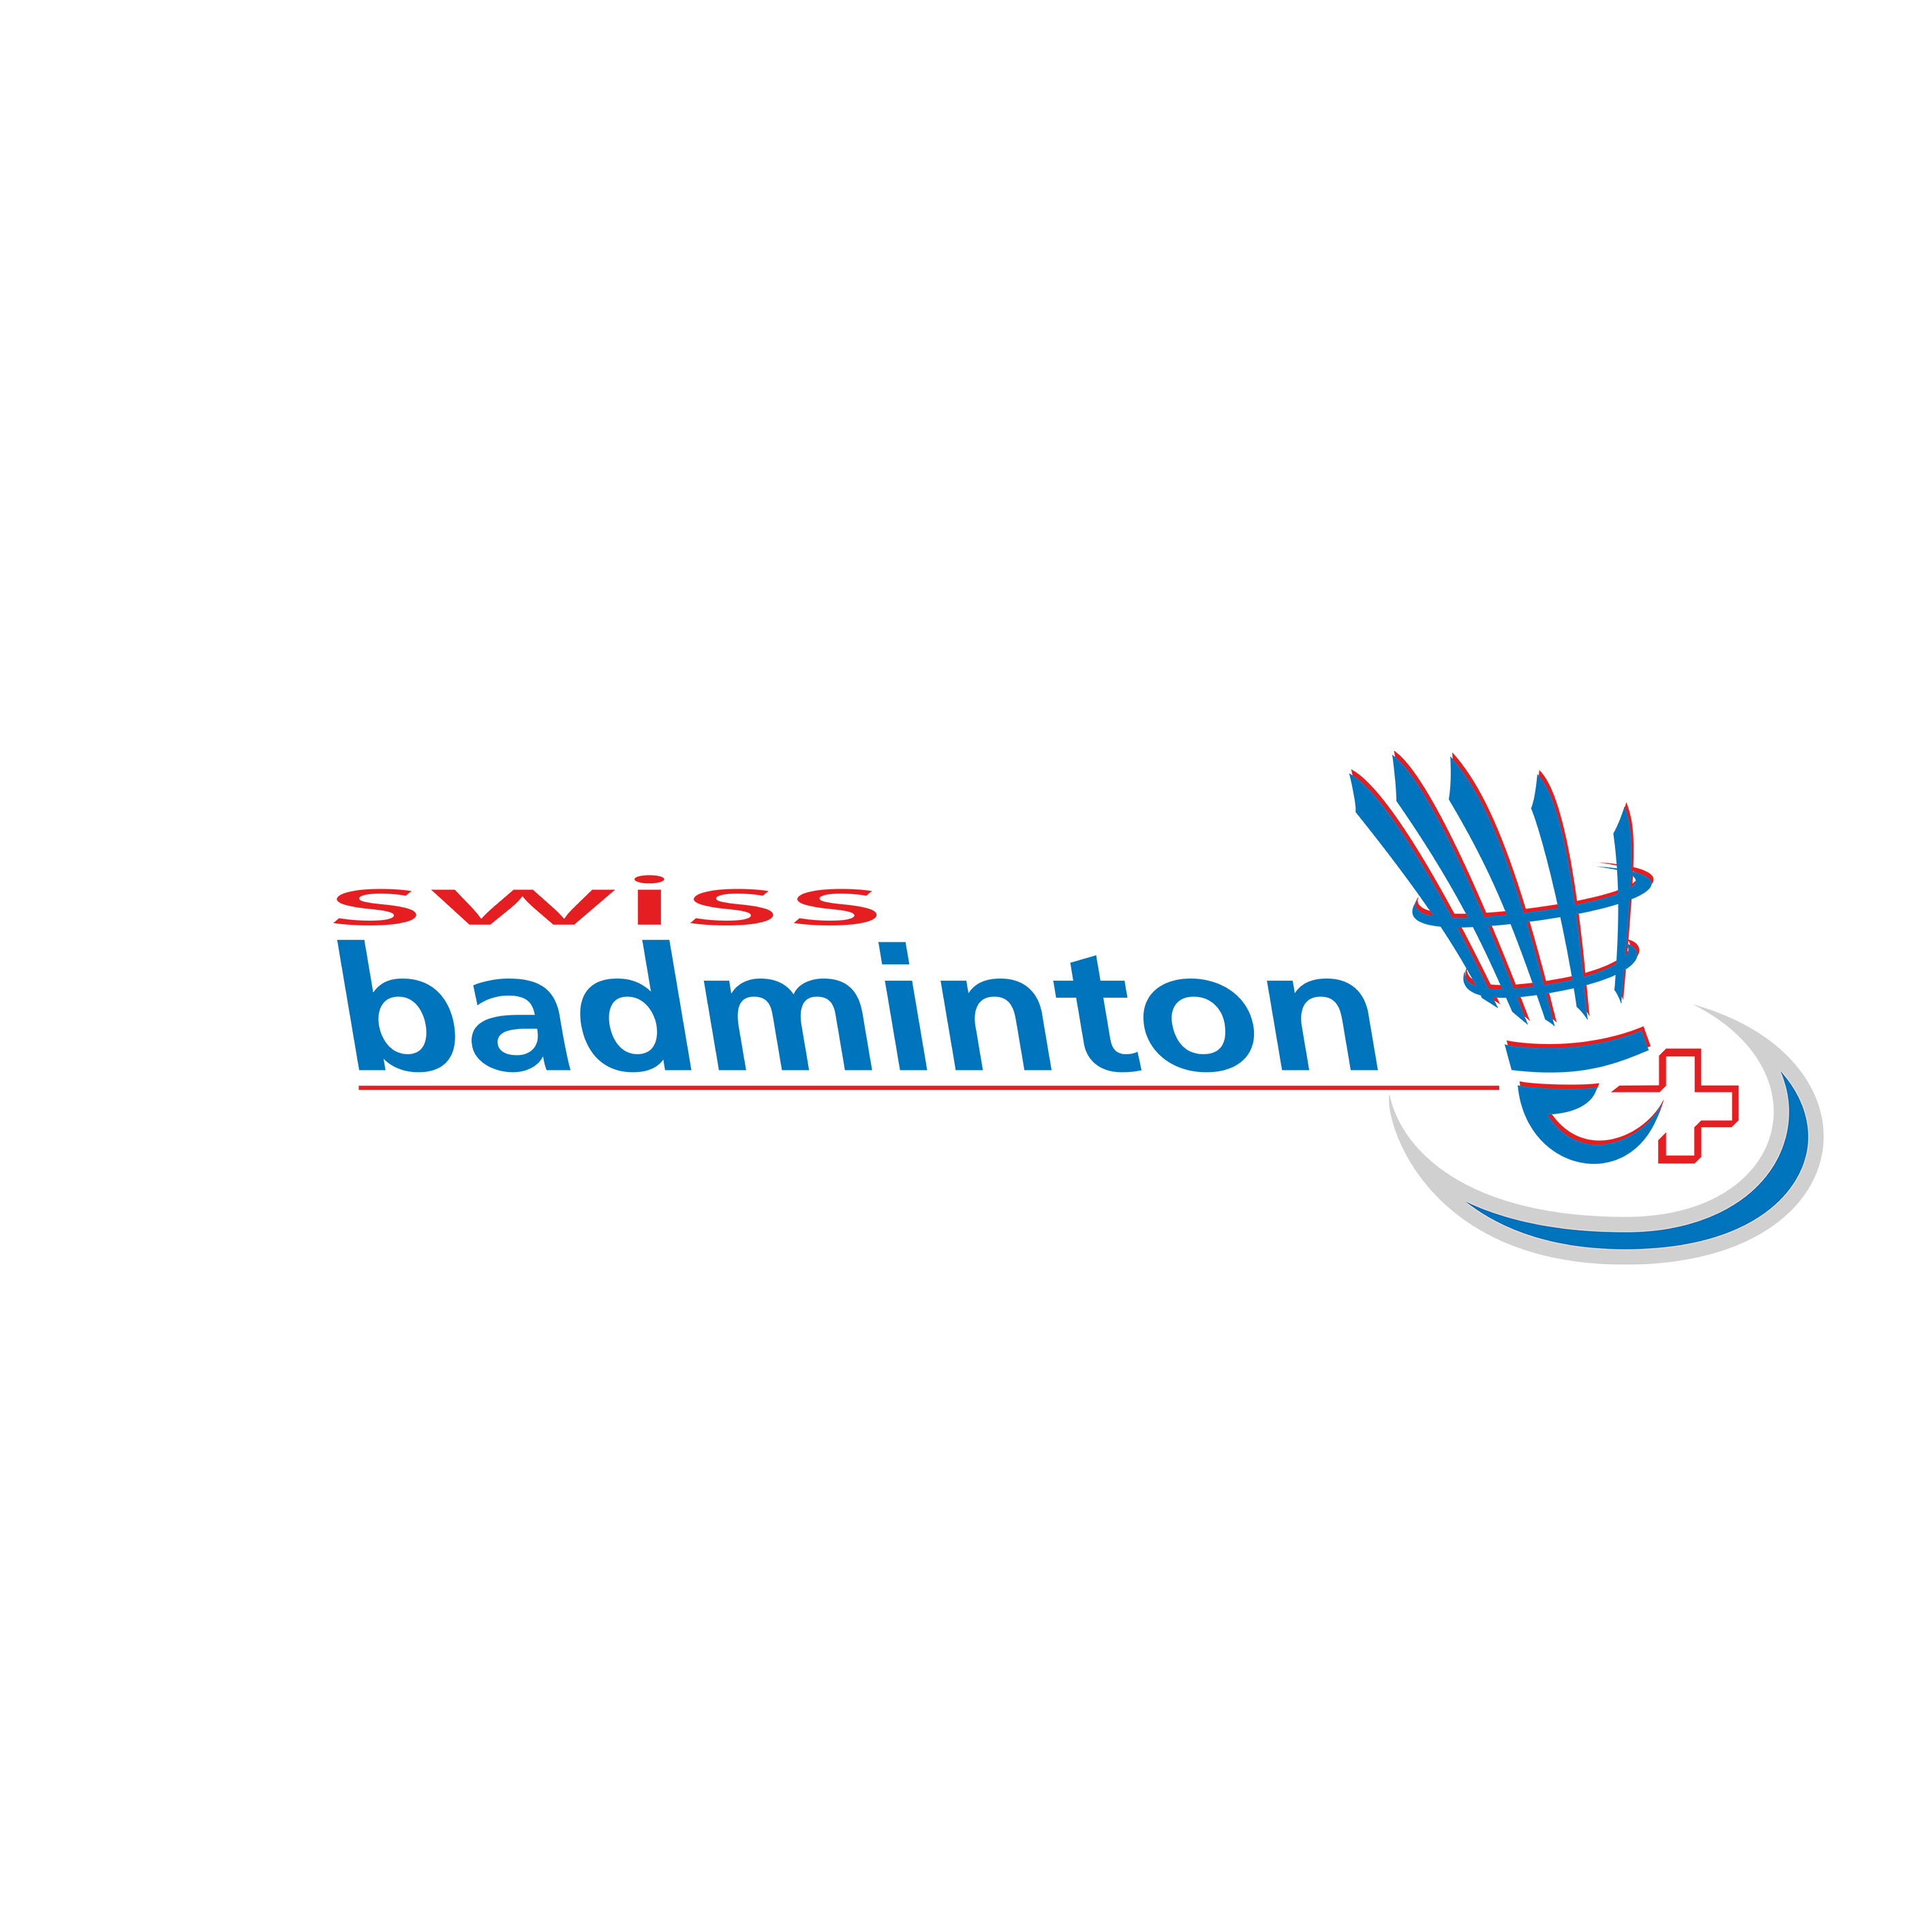 Swiss Badminton Federation